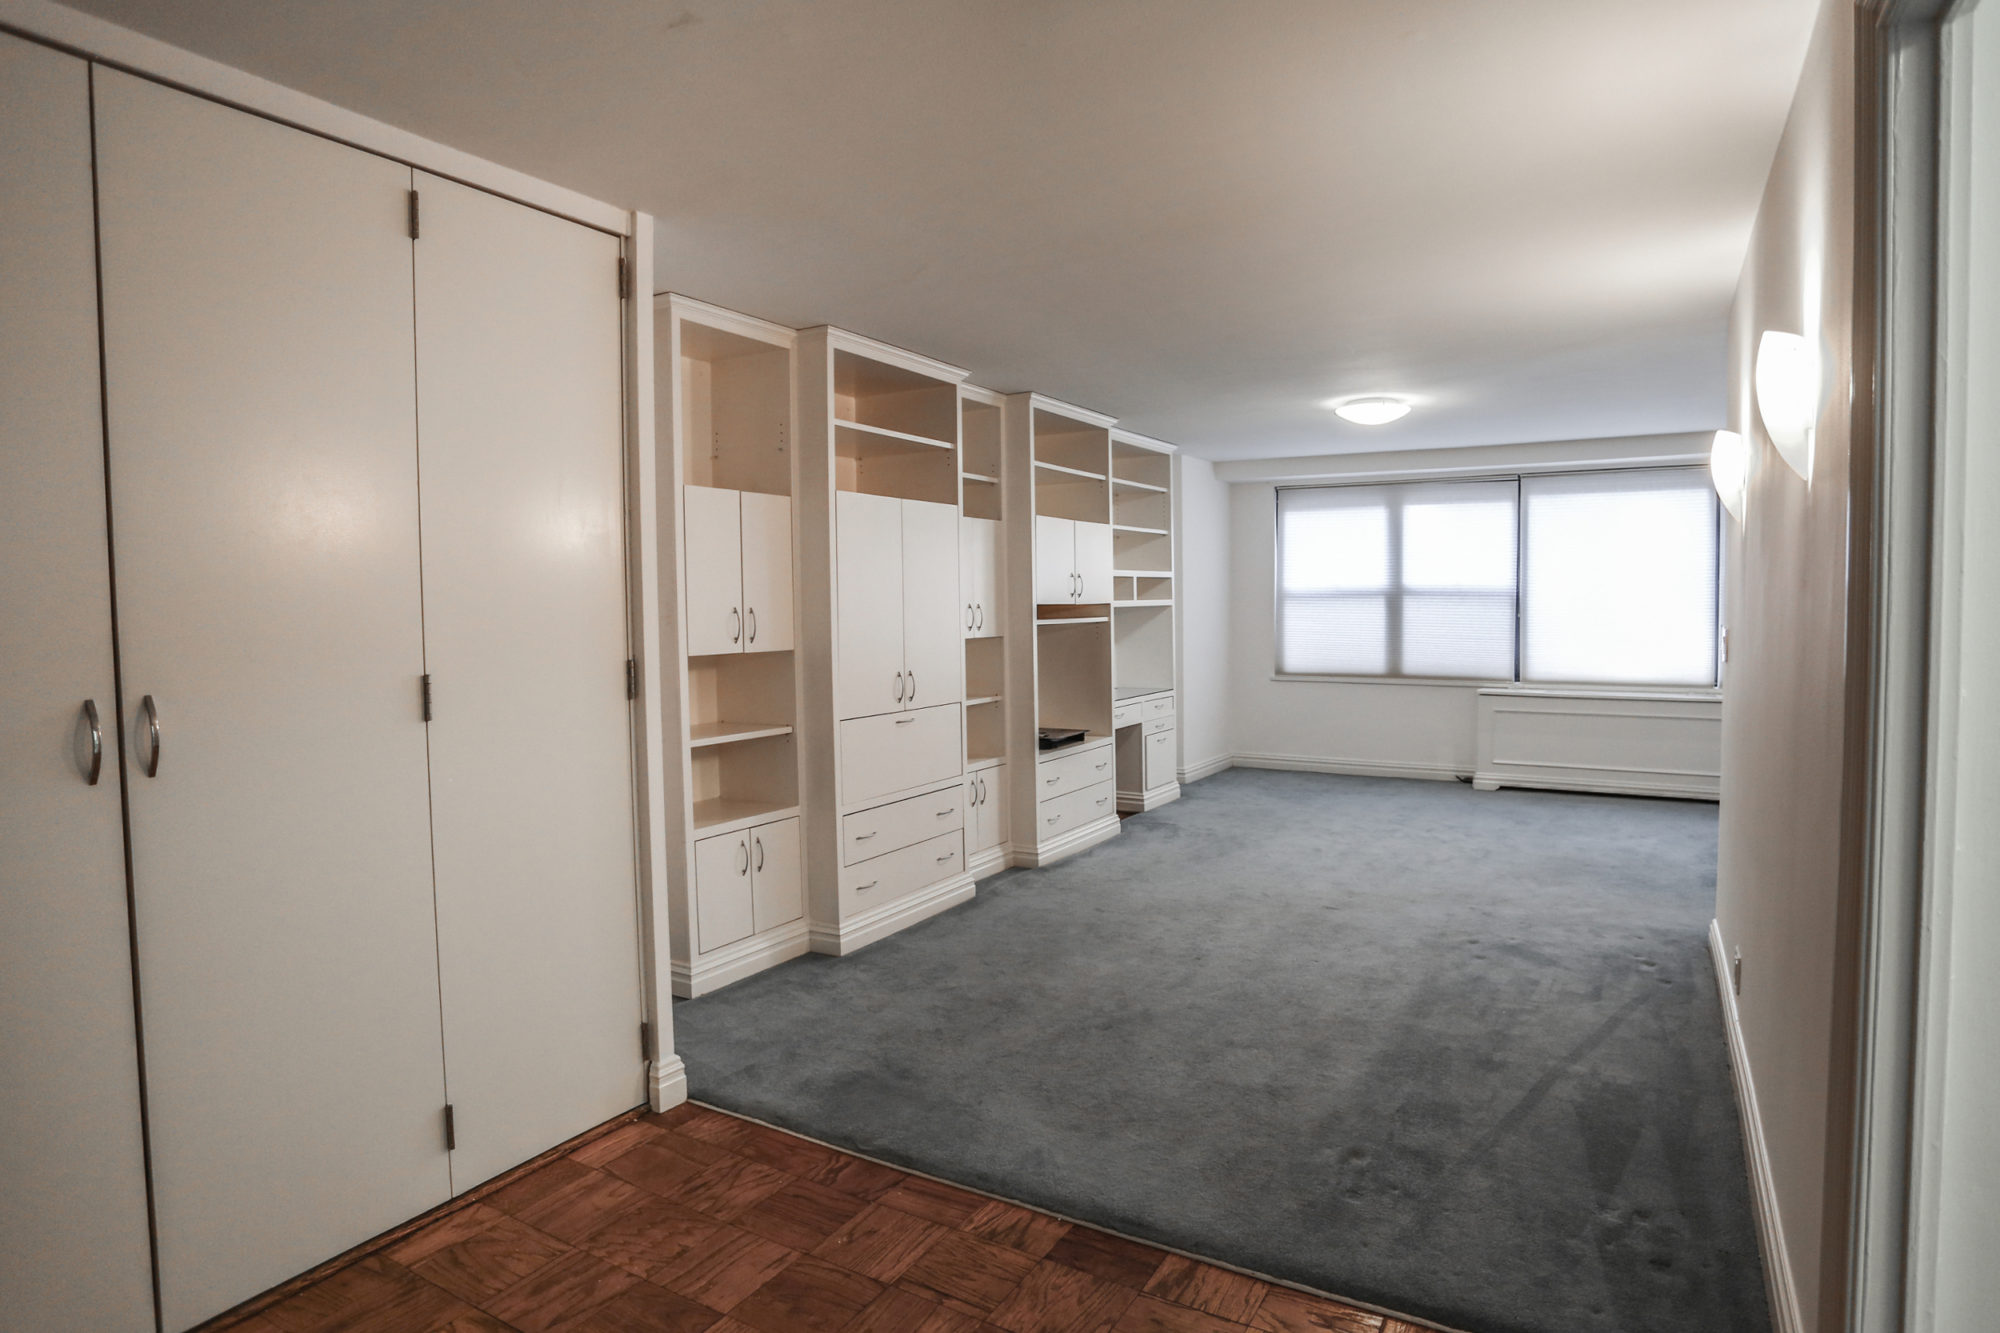 Junior One Coop, The Hamilton, 305 East 40th St. #3B, New York, NY  10016   SOLD